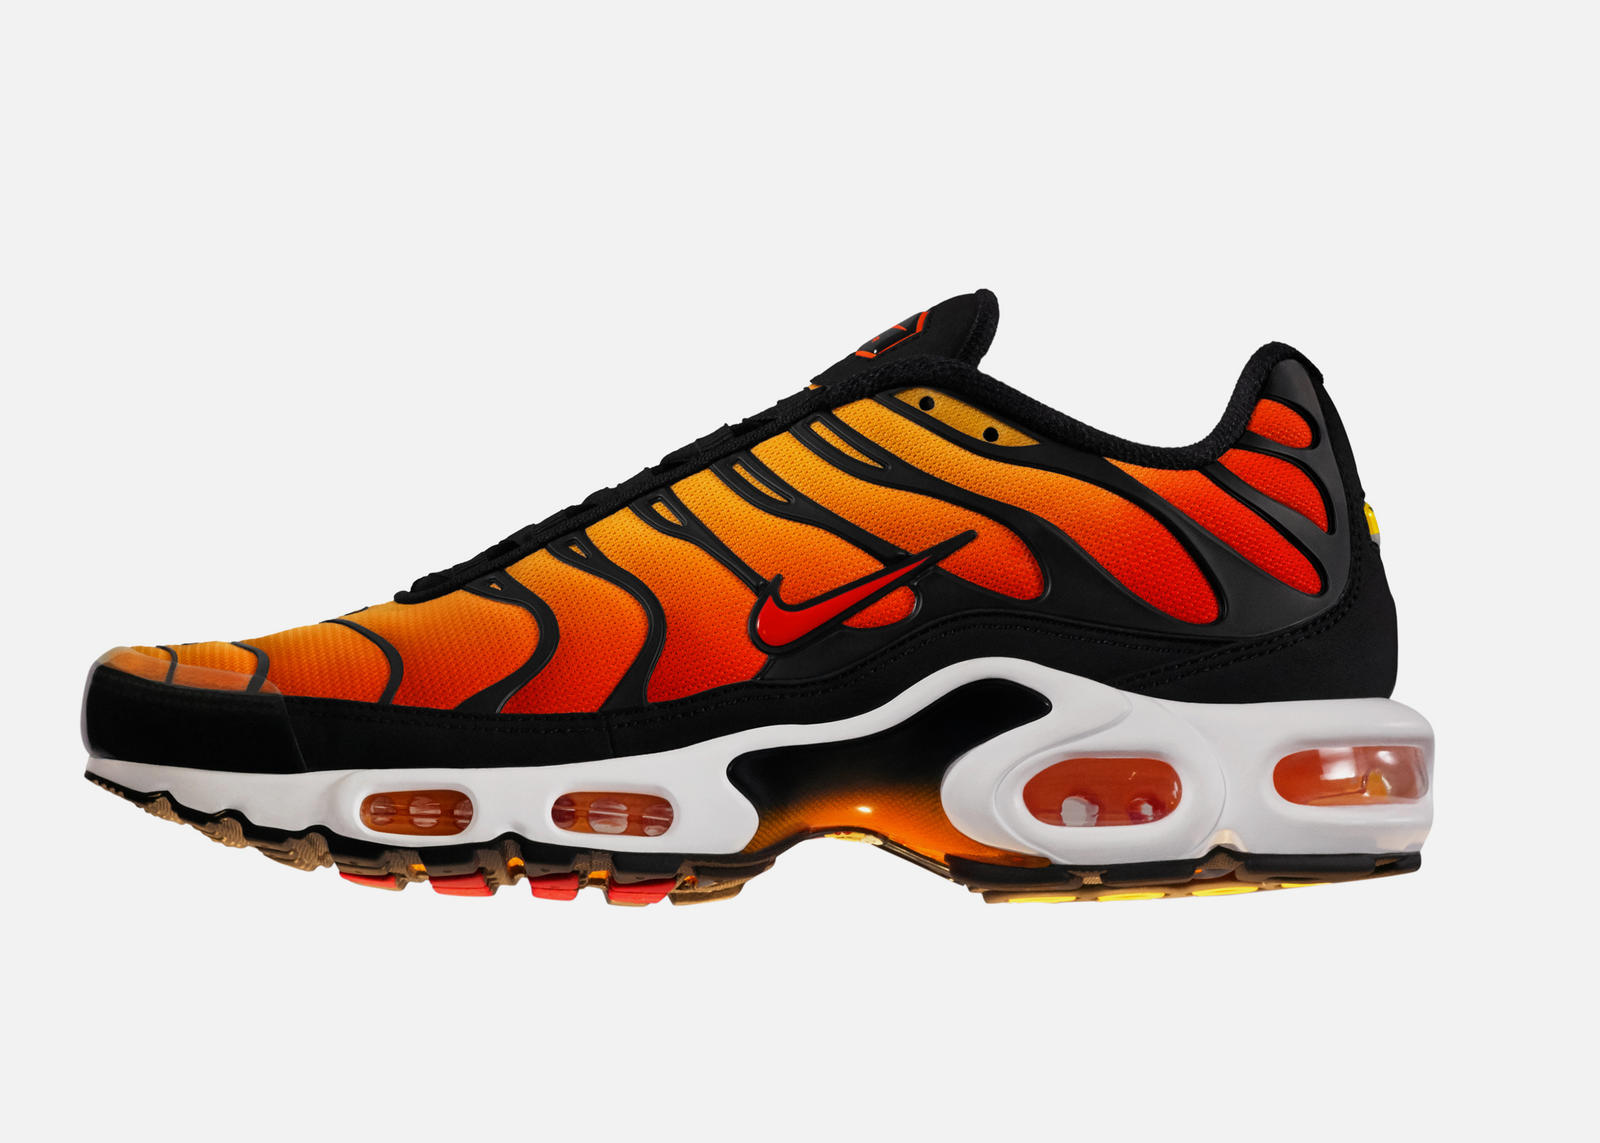 b52825abec The Untold Story of the Nike Air Max Plus 19